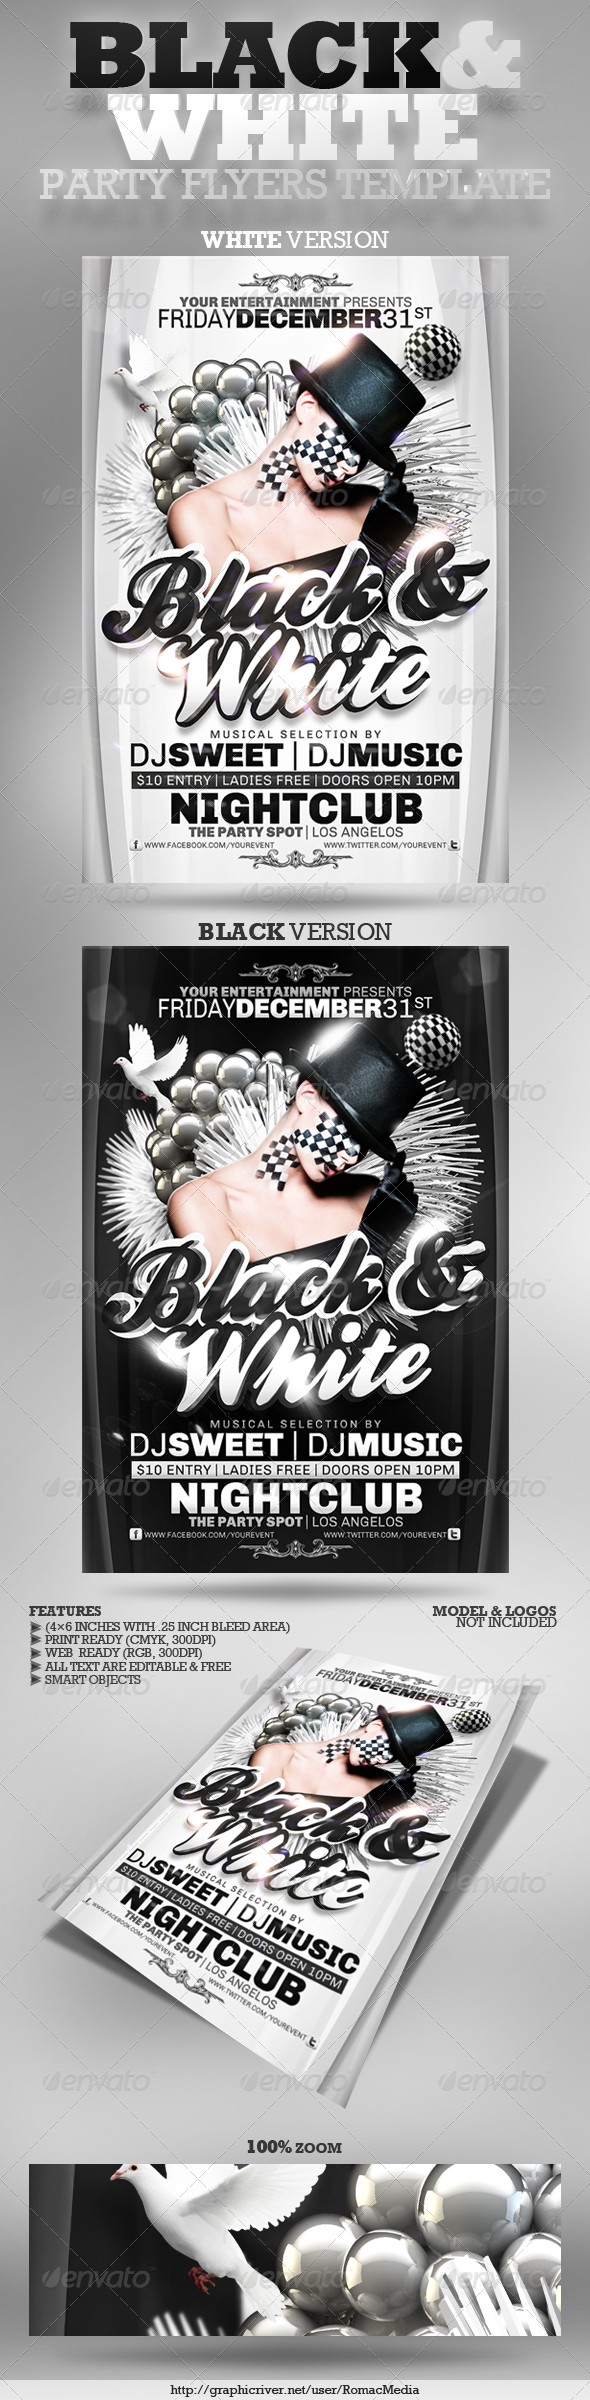 Black and White Party Flyers - Clubs & Parties Events